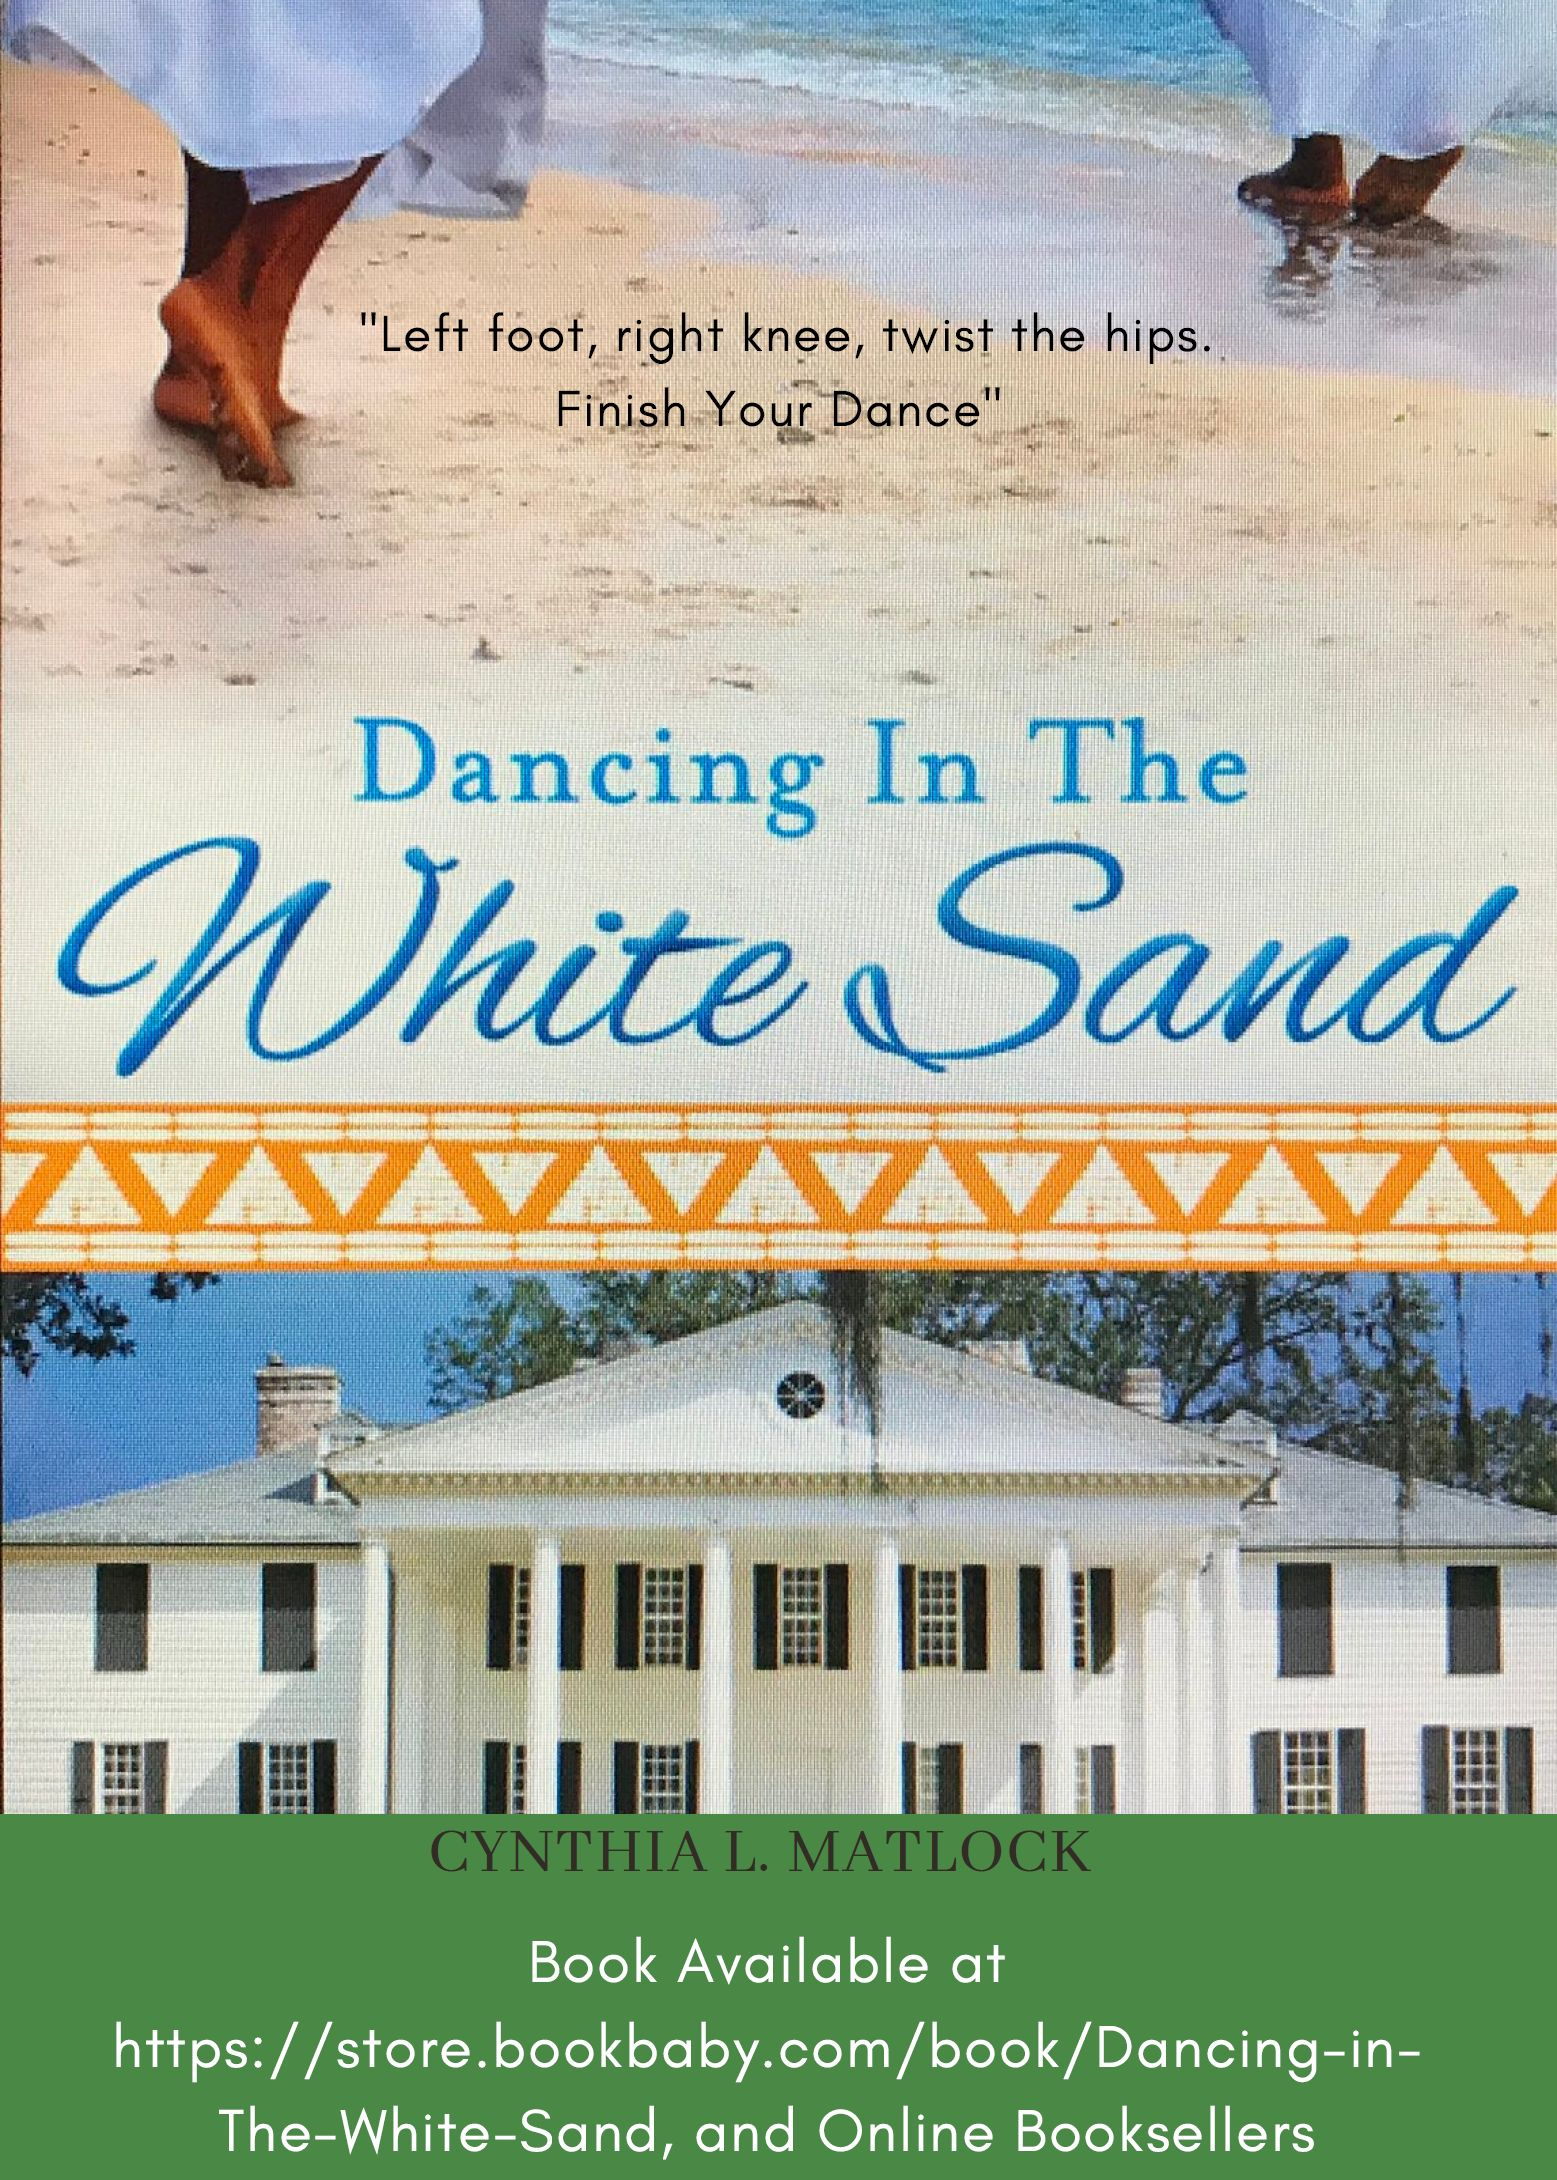 Dancing In The White Sand - Book by Cynthia L. Matlock